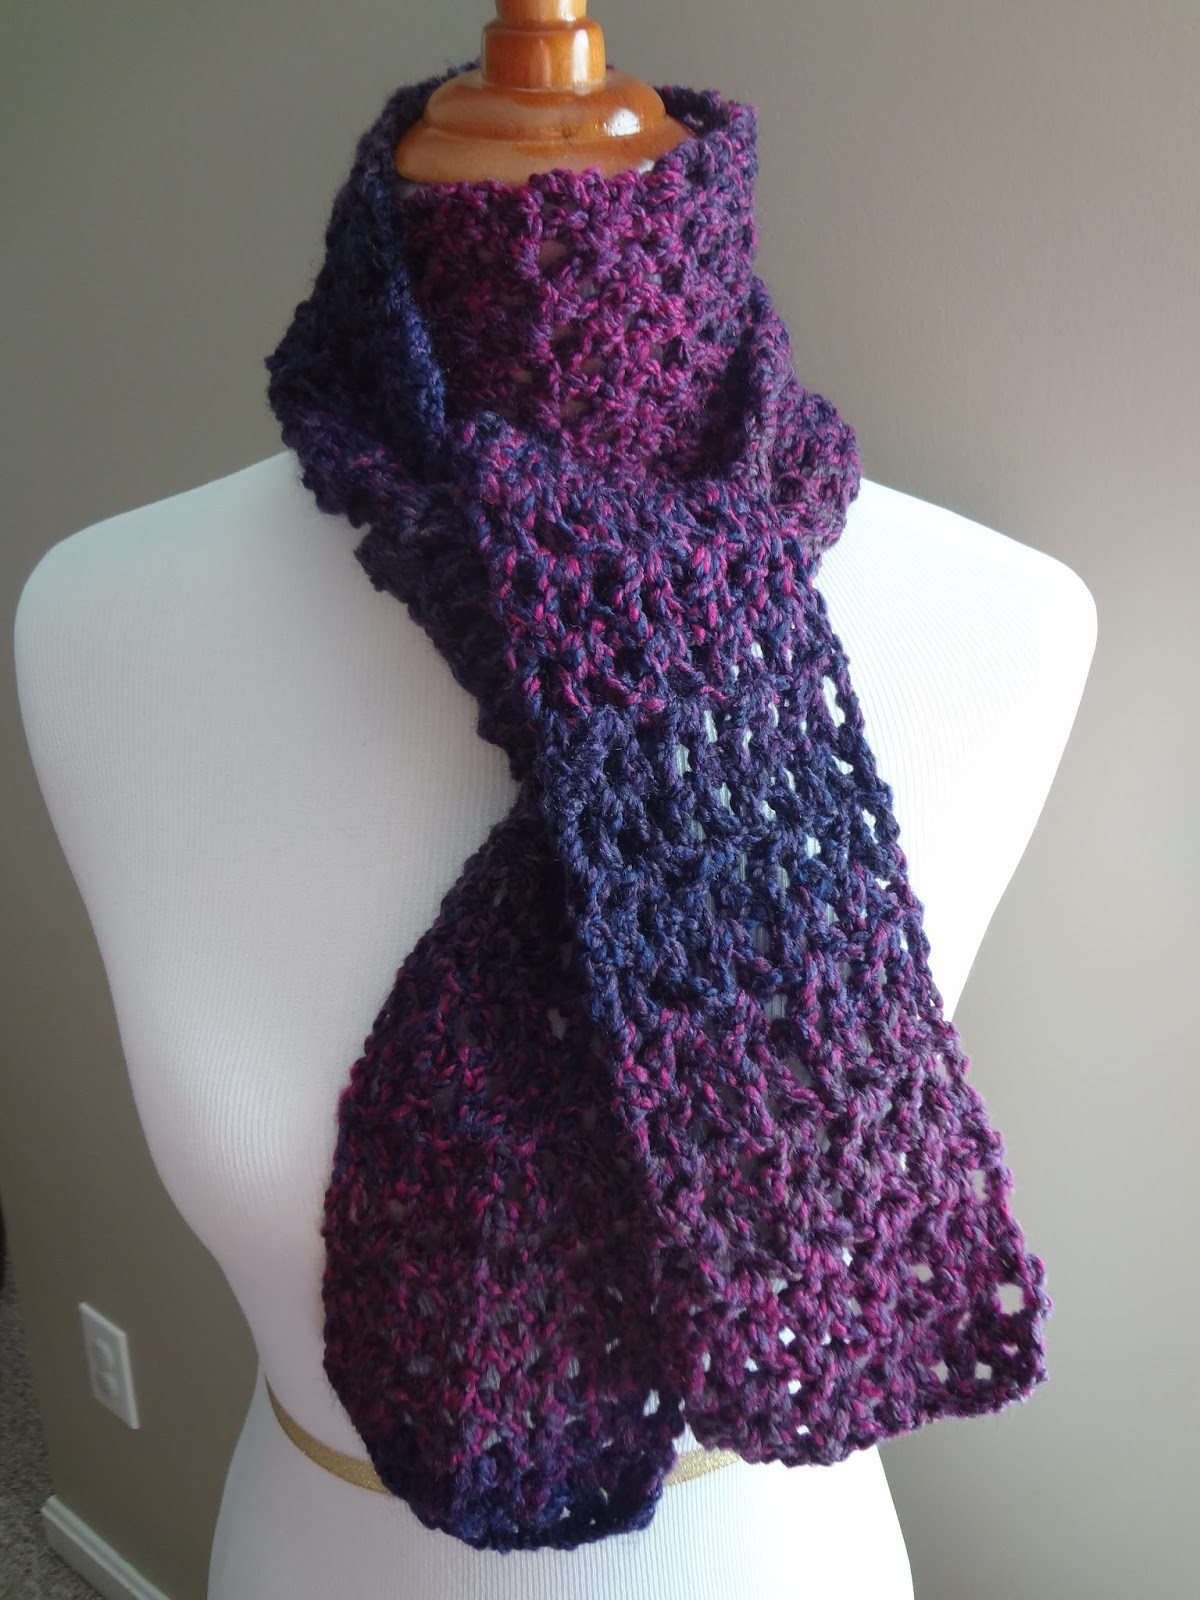 Crochet Scarf Patterns New Fiber Flux Free Crochet Pattern Blueberry Pie Scarf Of Charming 49 Models Crochet Scarf Patterns